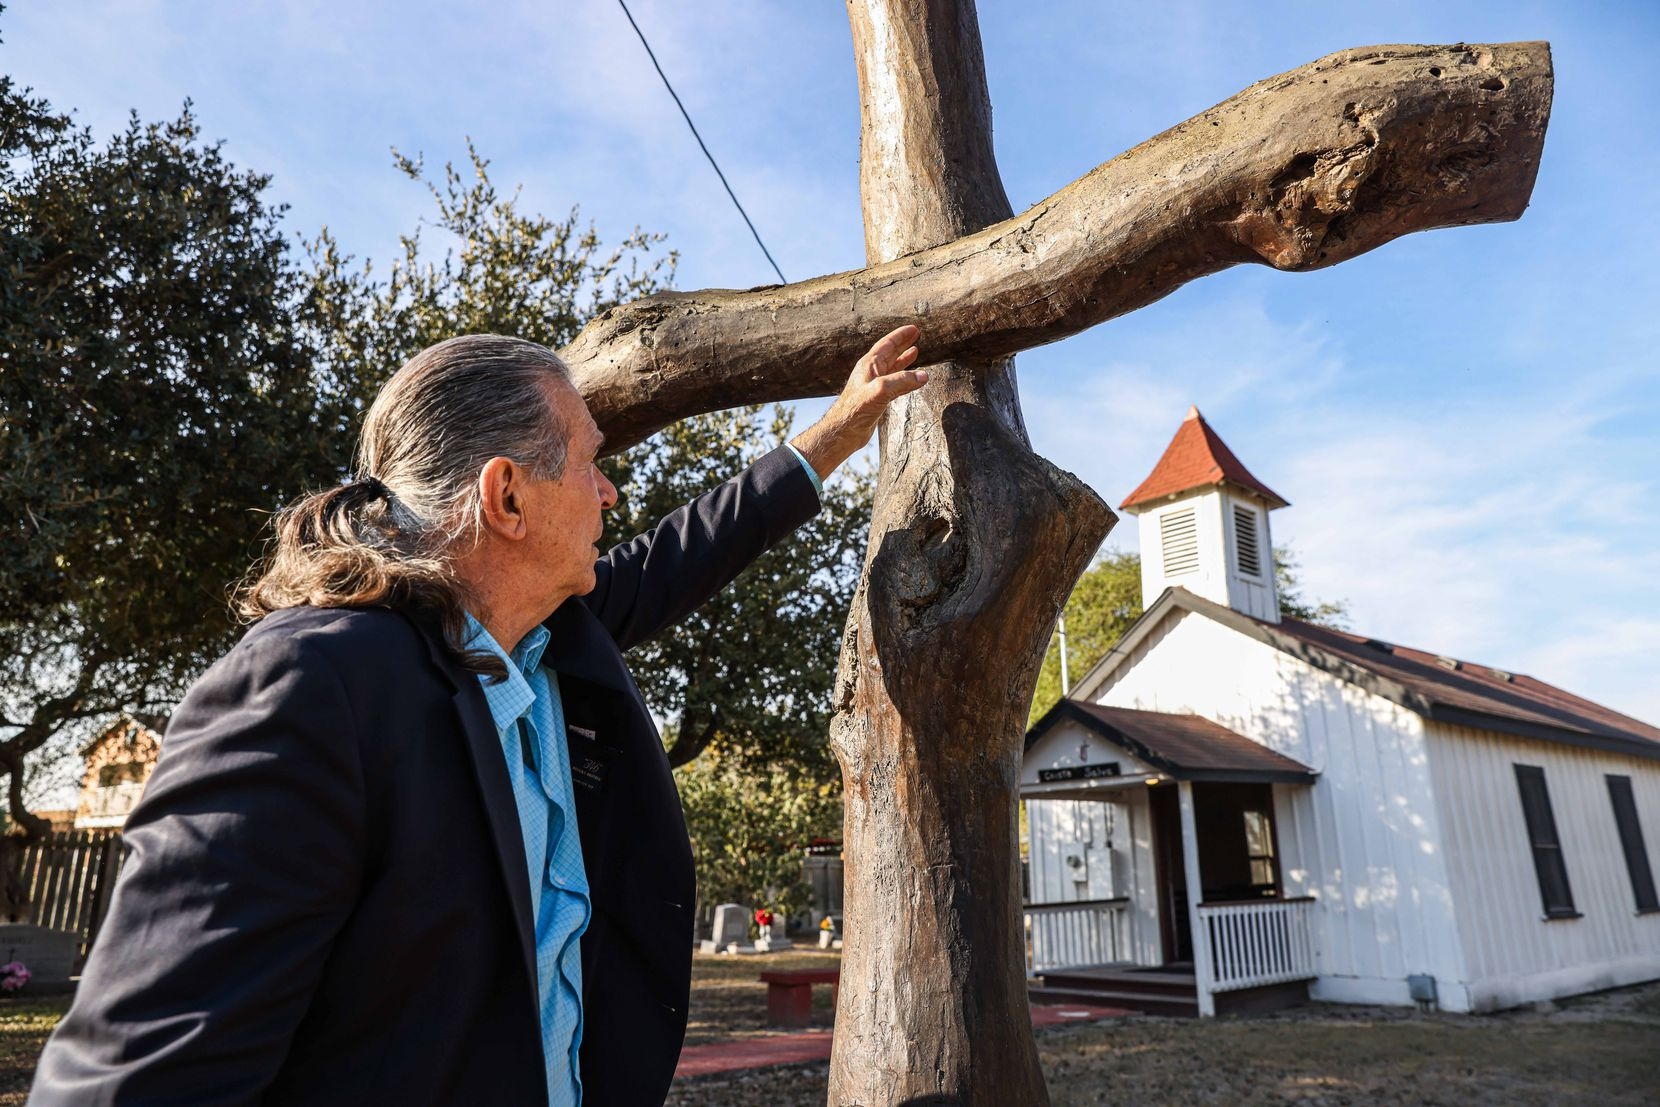 Ramiro Ramirez, 72, talks about how he built a cross with wood that he collected from his ranch for the the United Methodist Jackson Chapel and the historical legacy his family has in the lands near the border with Mexico in Pharr, Texas on Wednesday, January 13, 2021.